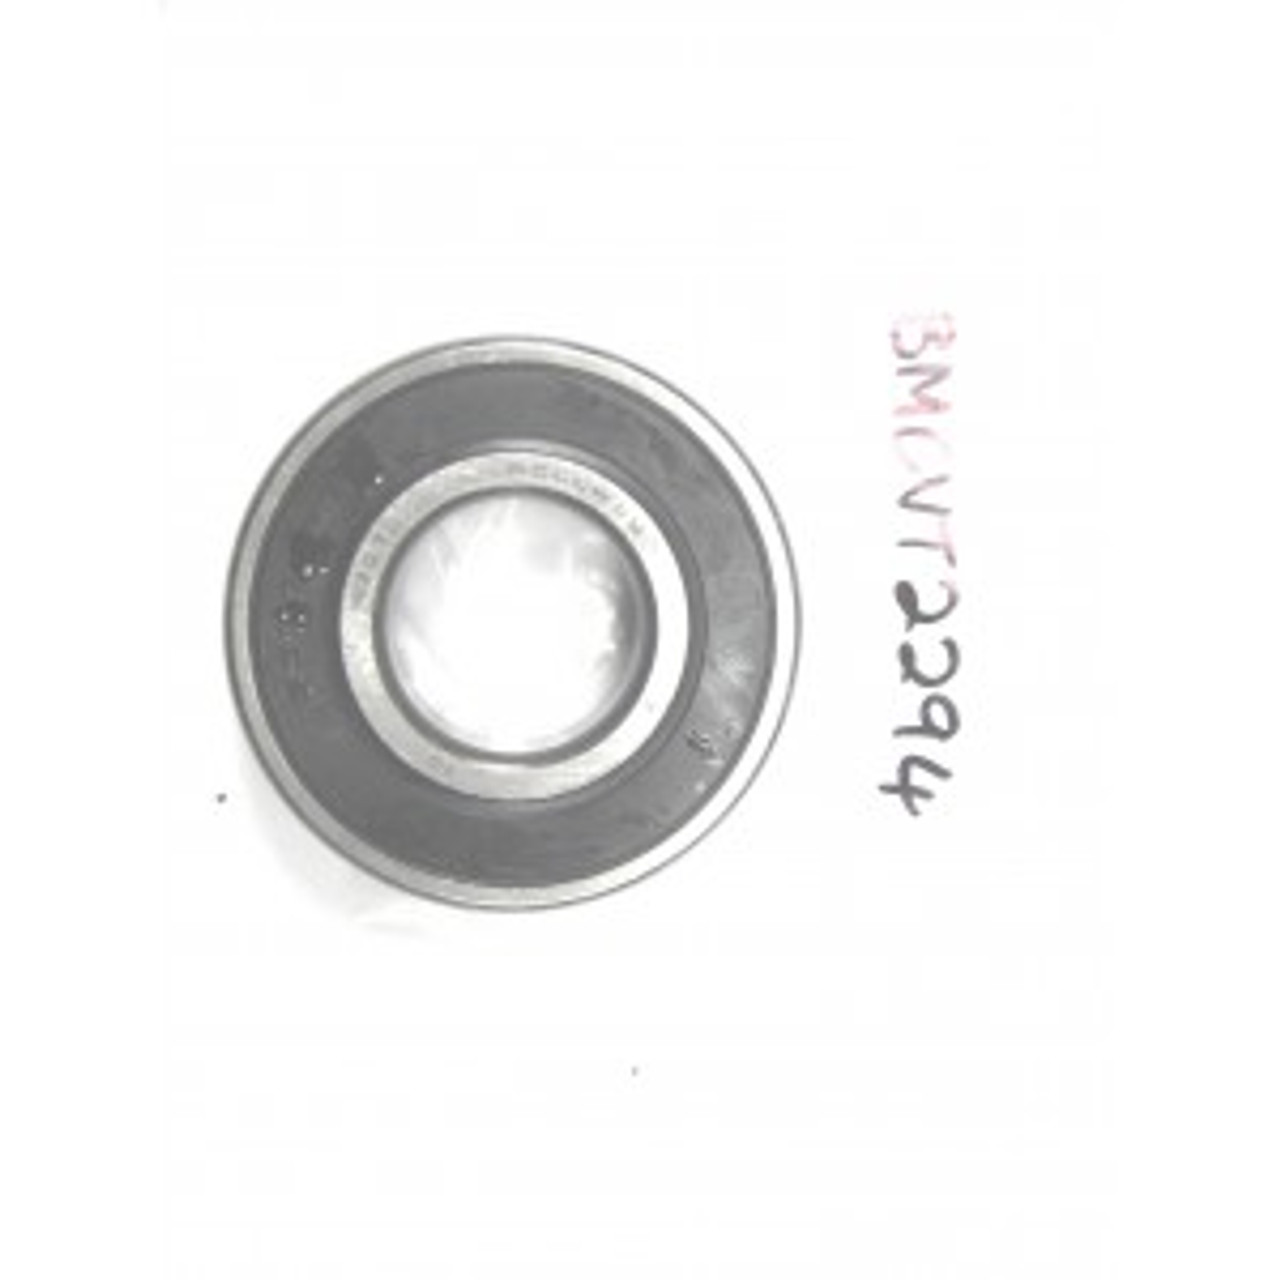 Primary Pulley Support Bearing